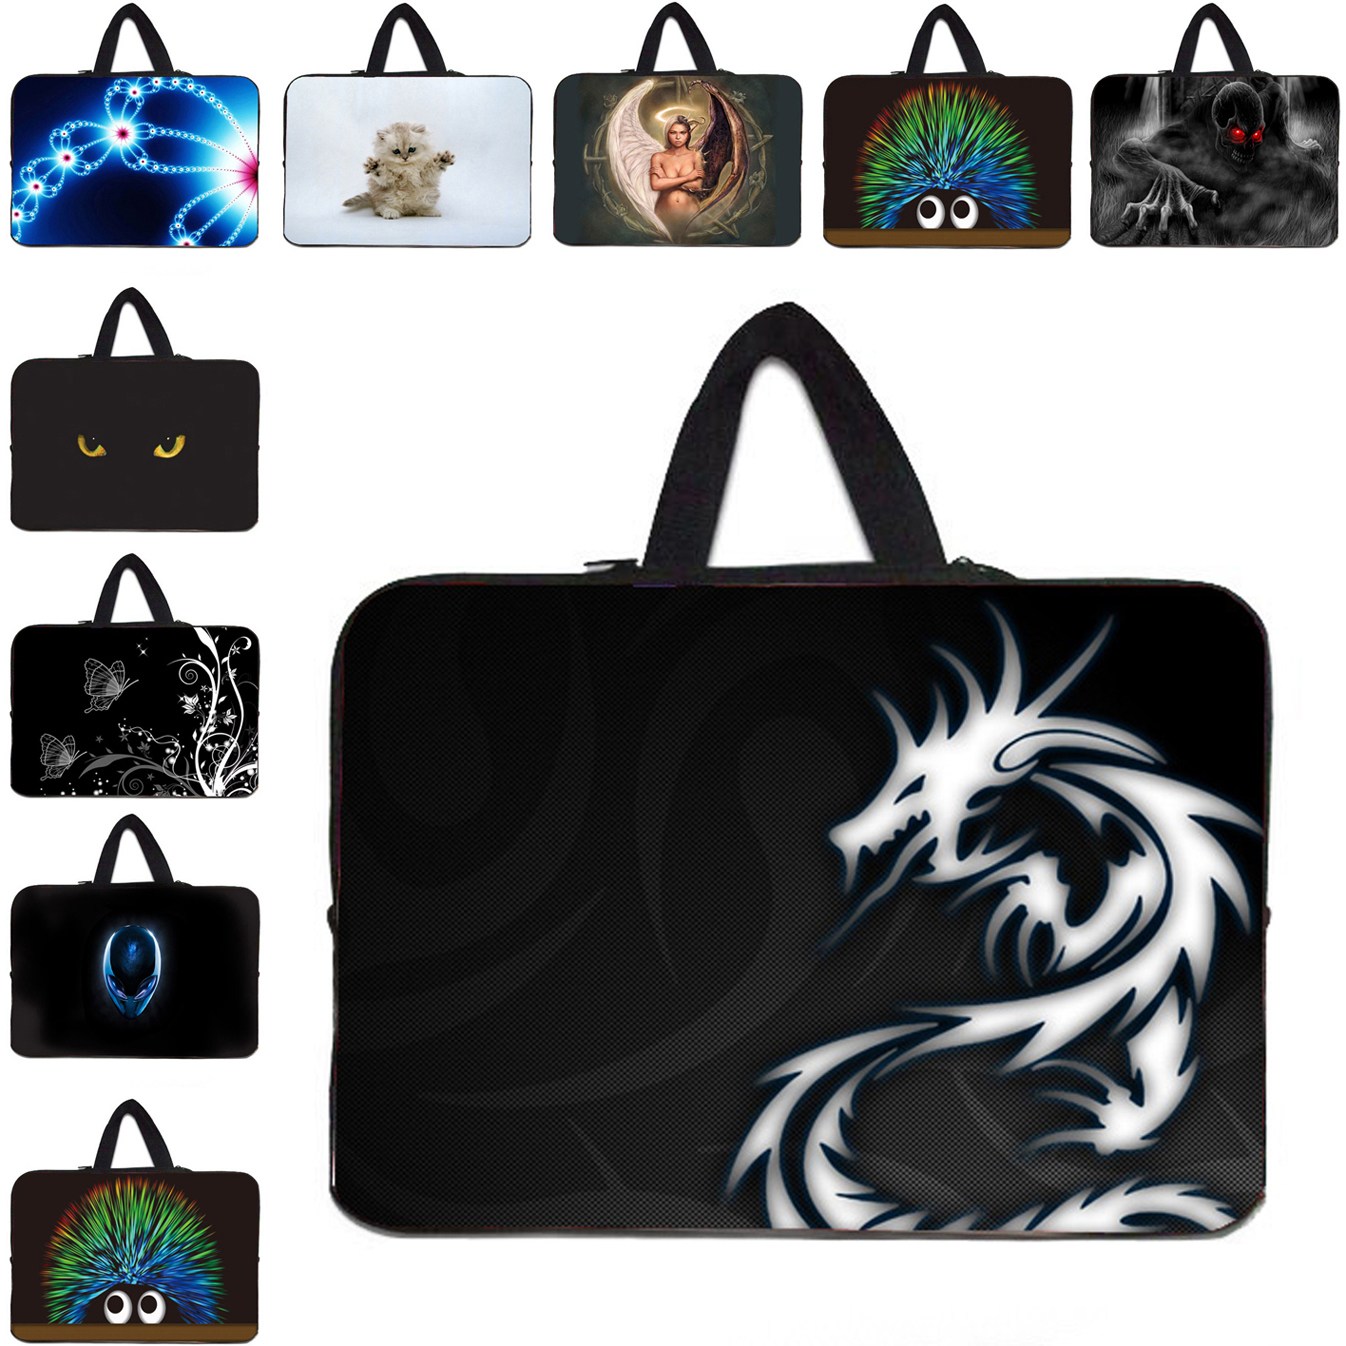 Fashion 16.8 17 inch Notebook Bags 17.3 15 13 12 10 14 Inch Sleeve Laptop Bags For Macbook Pro Lenovo Tab Asus Acer Dell HP En